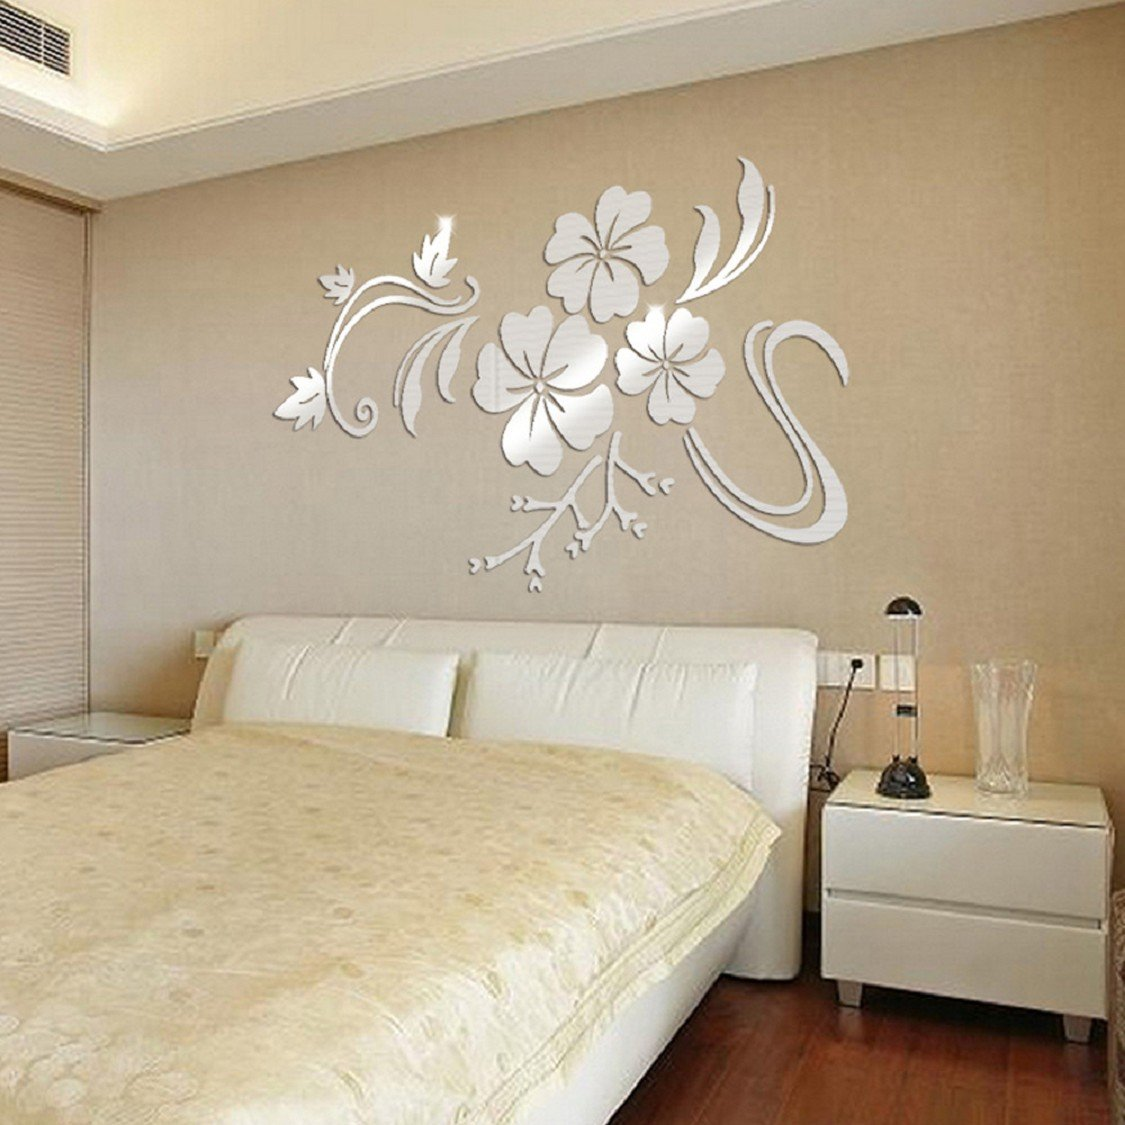 Ikevan 1Set Acrylic Art 3D Mirror Flower Wall Stickers DIY Home